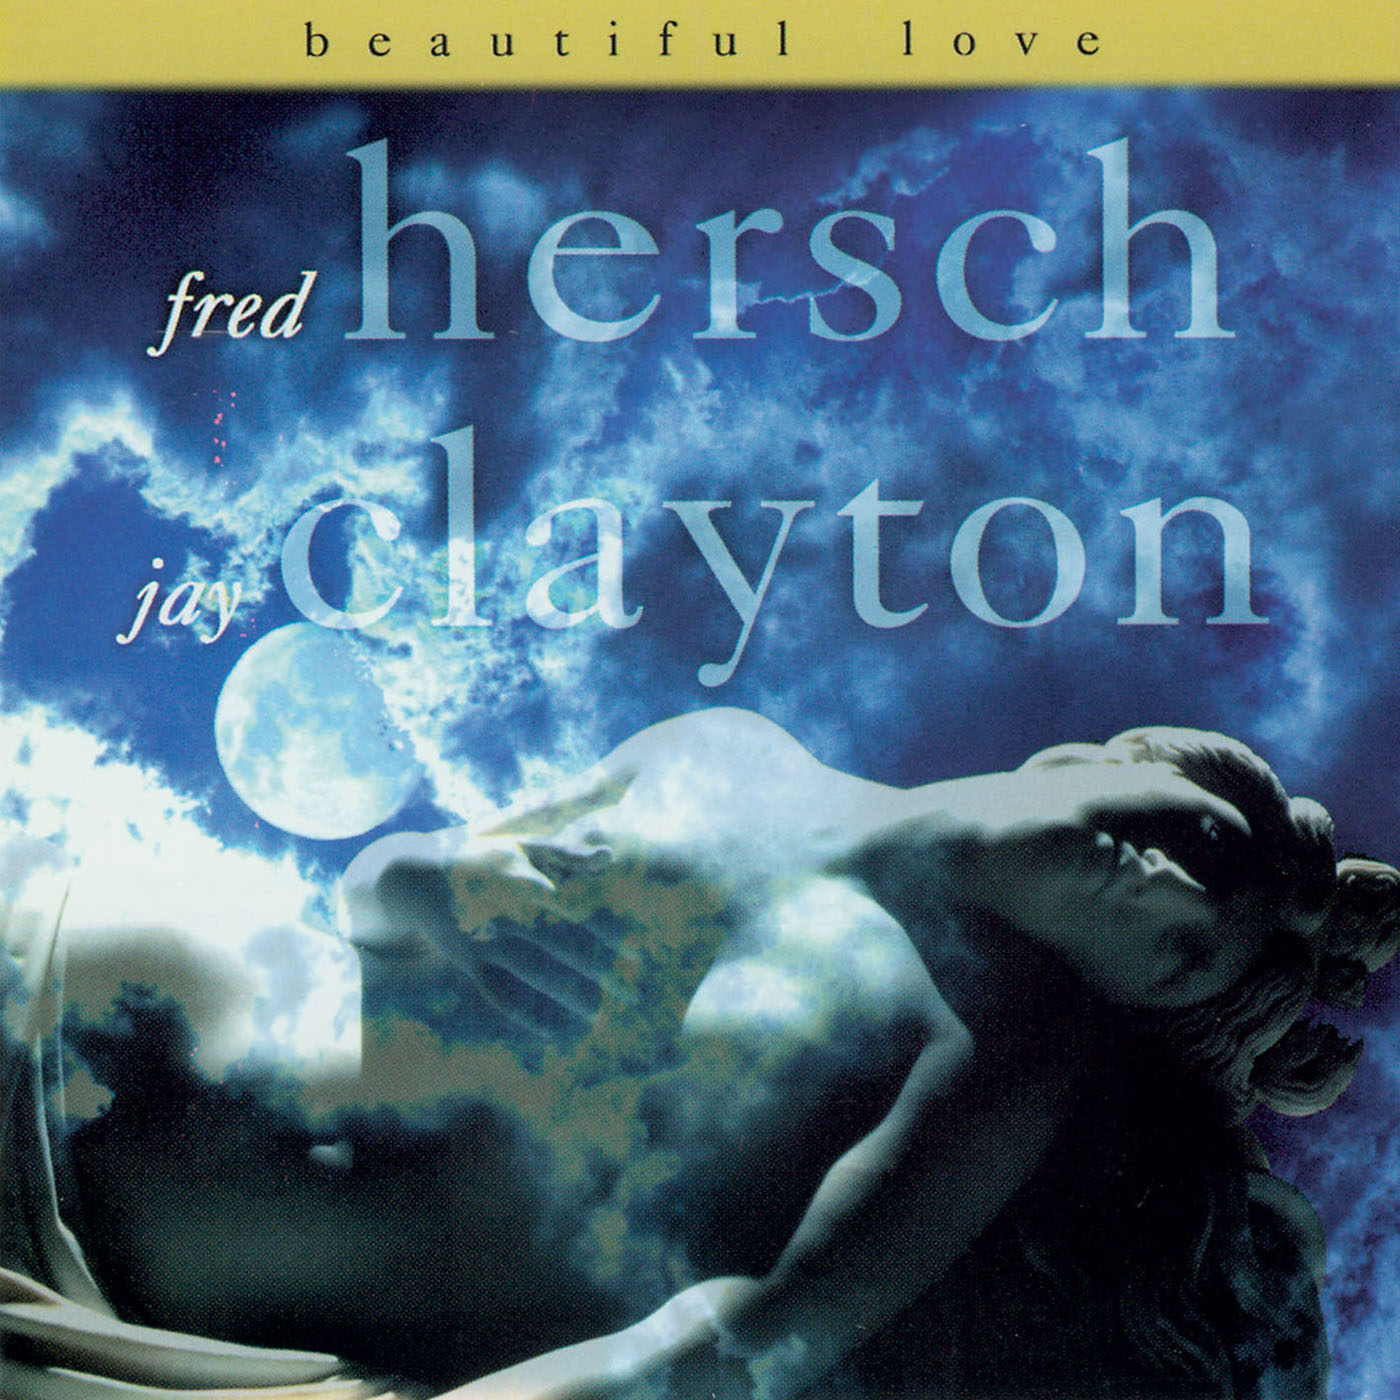 Beautiful Love by Fred Hersch / Jay Clayton cover